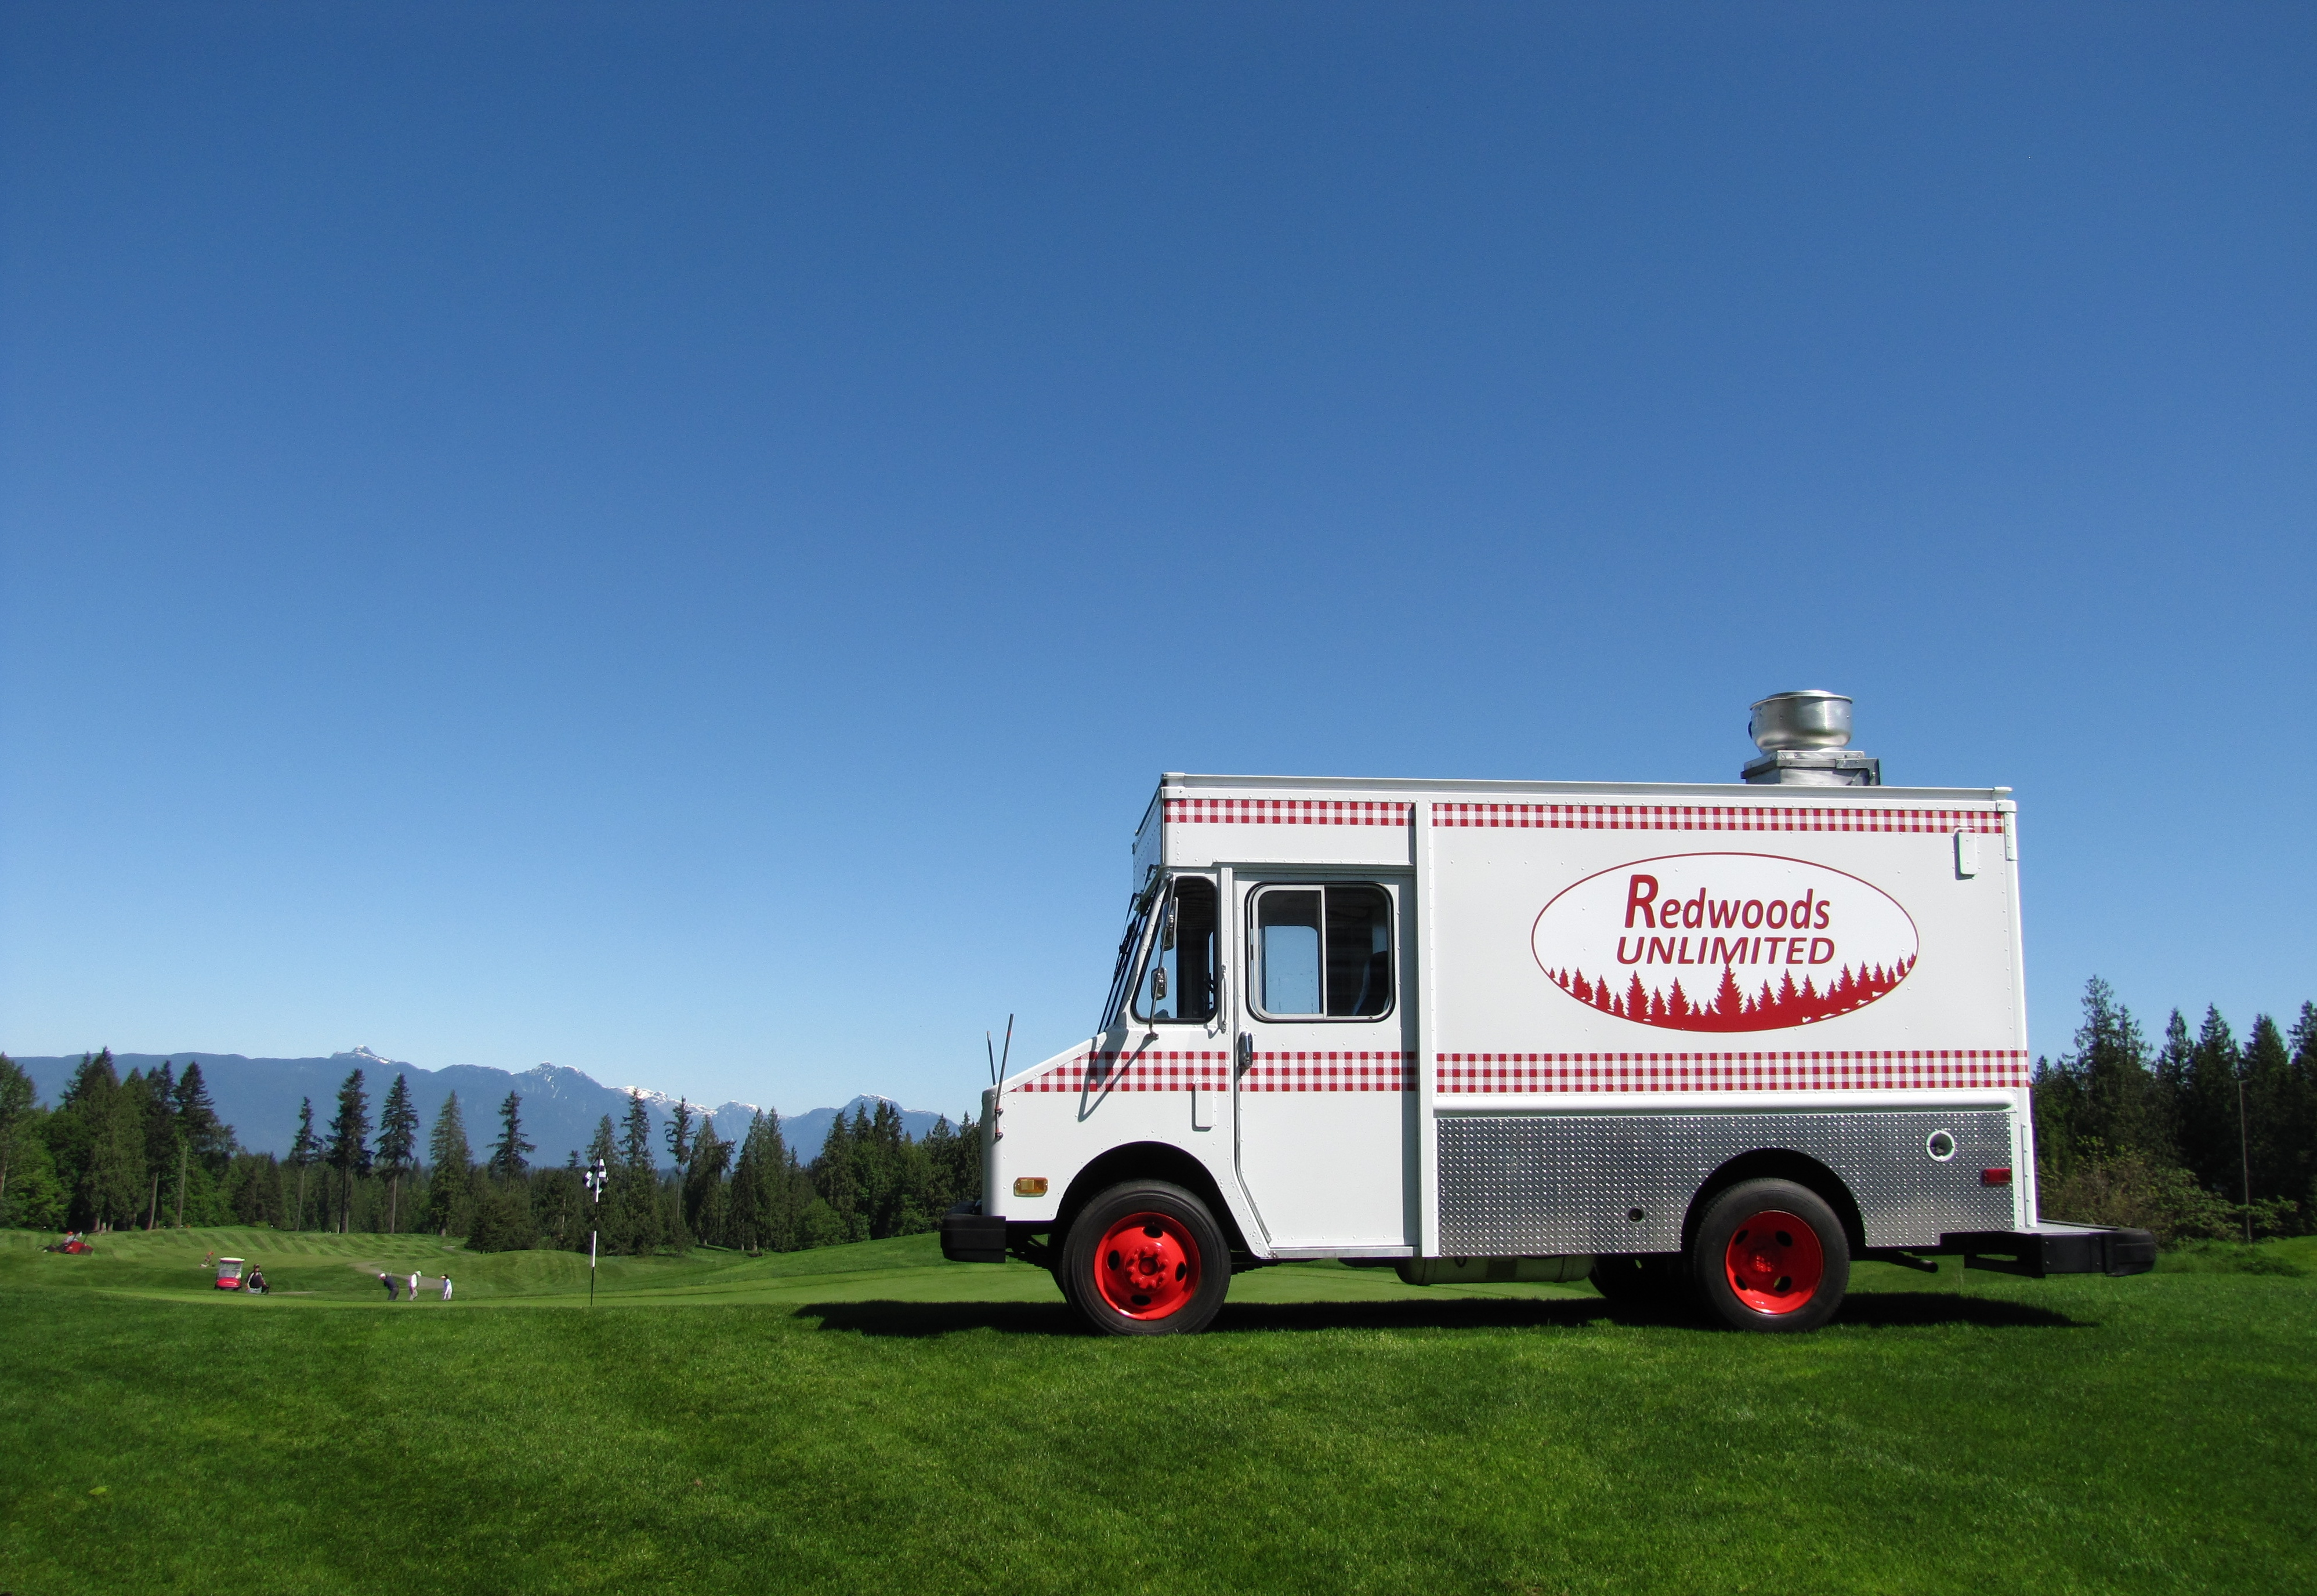 Redwoods food truck